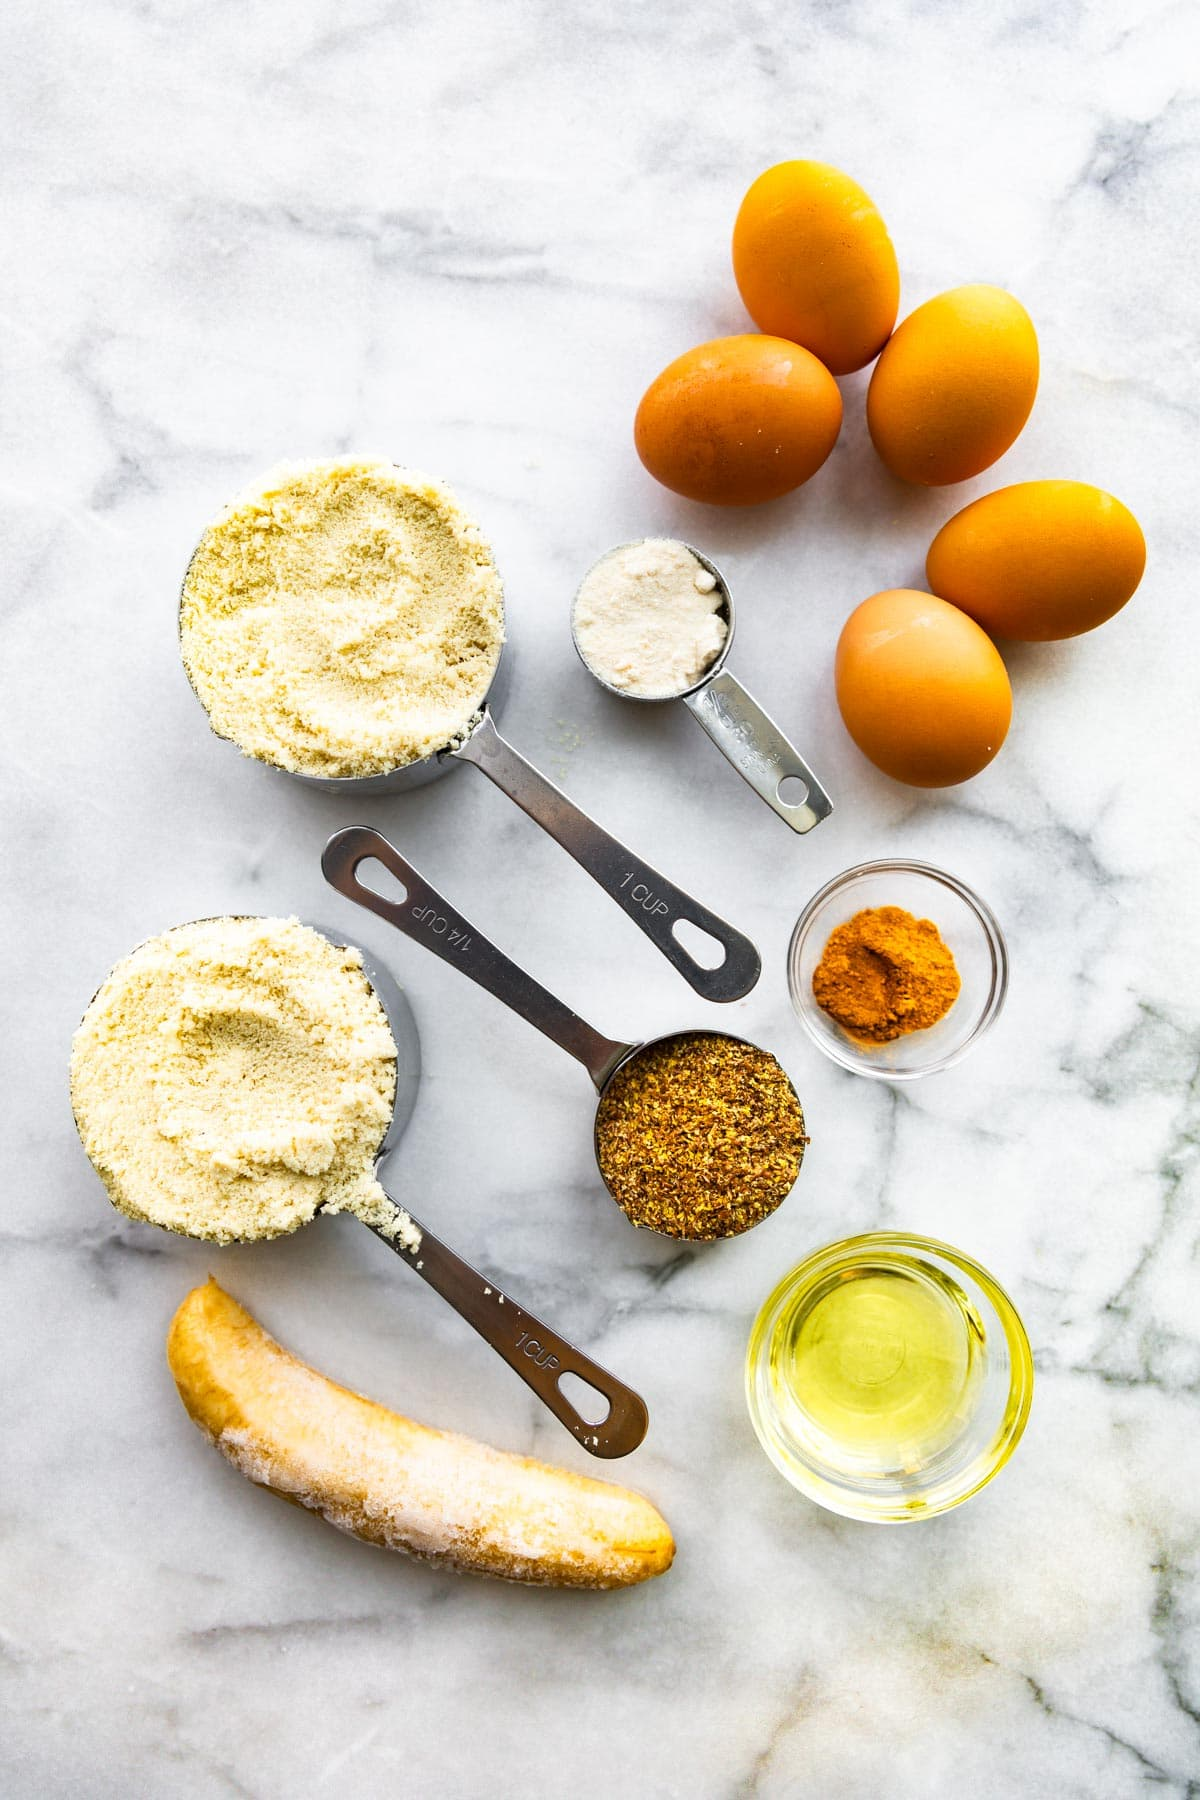 5 eggs and other ingredients in measuring cups for keto banana bread recipe